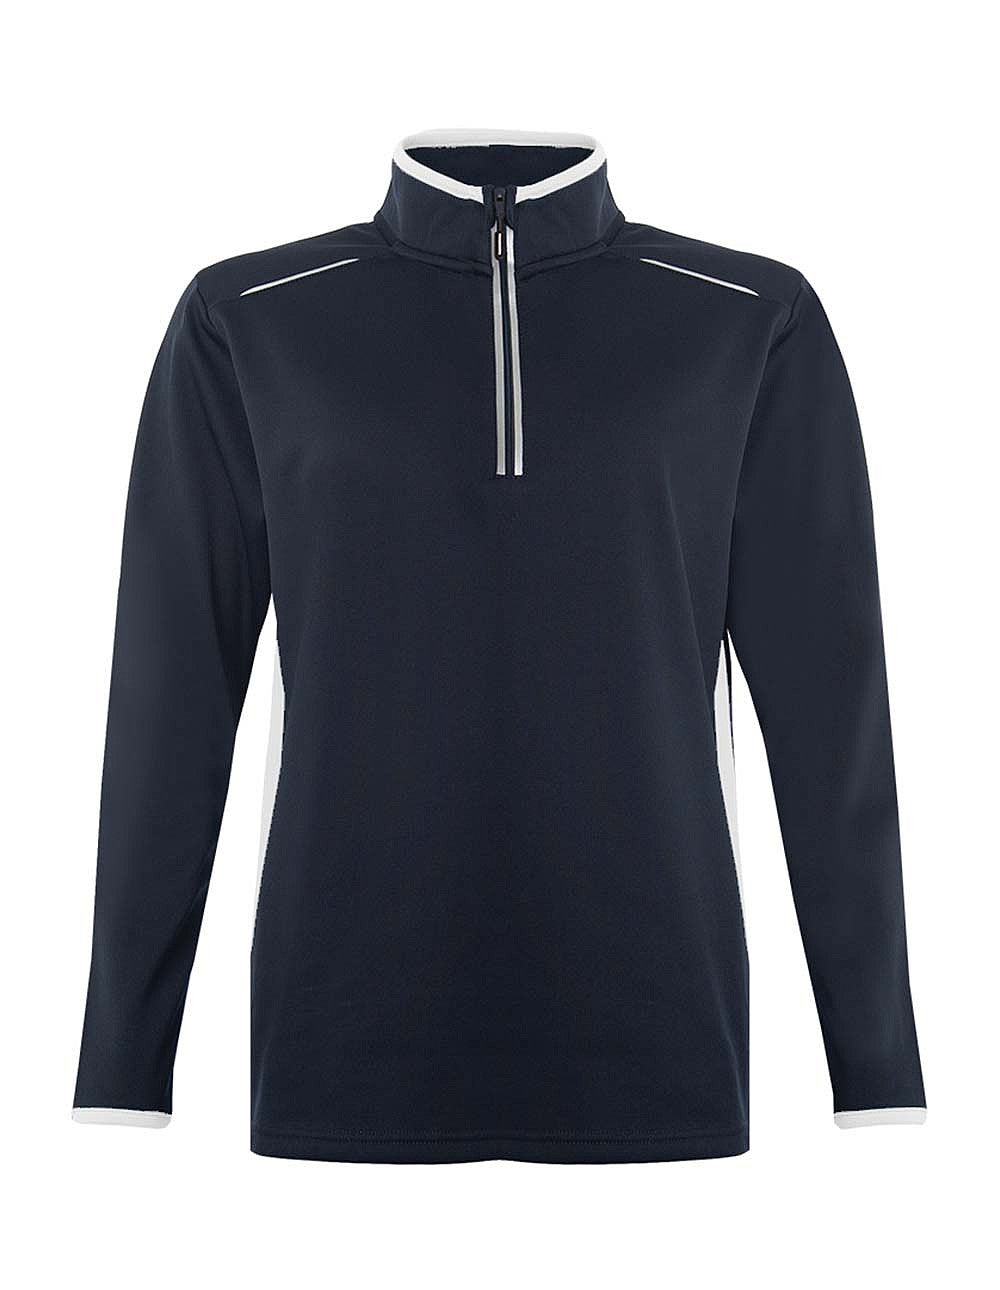 Eskdale School Embroidered  Quarter Zip Top